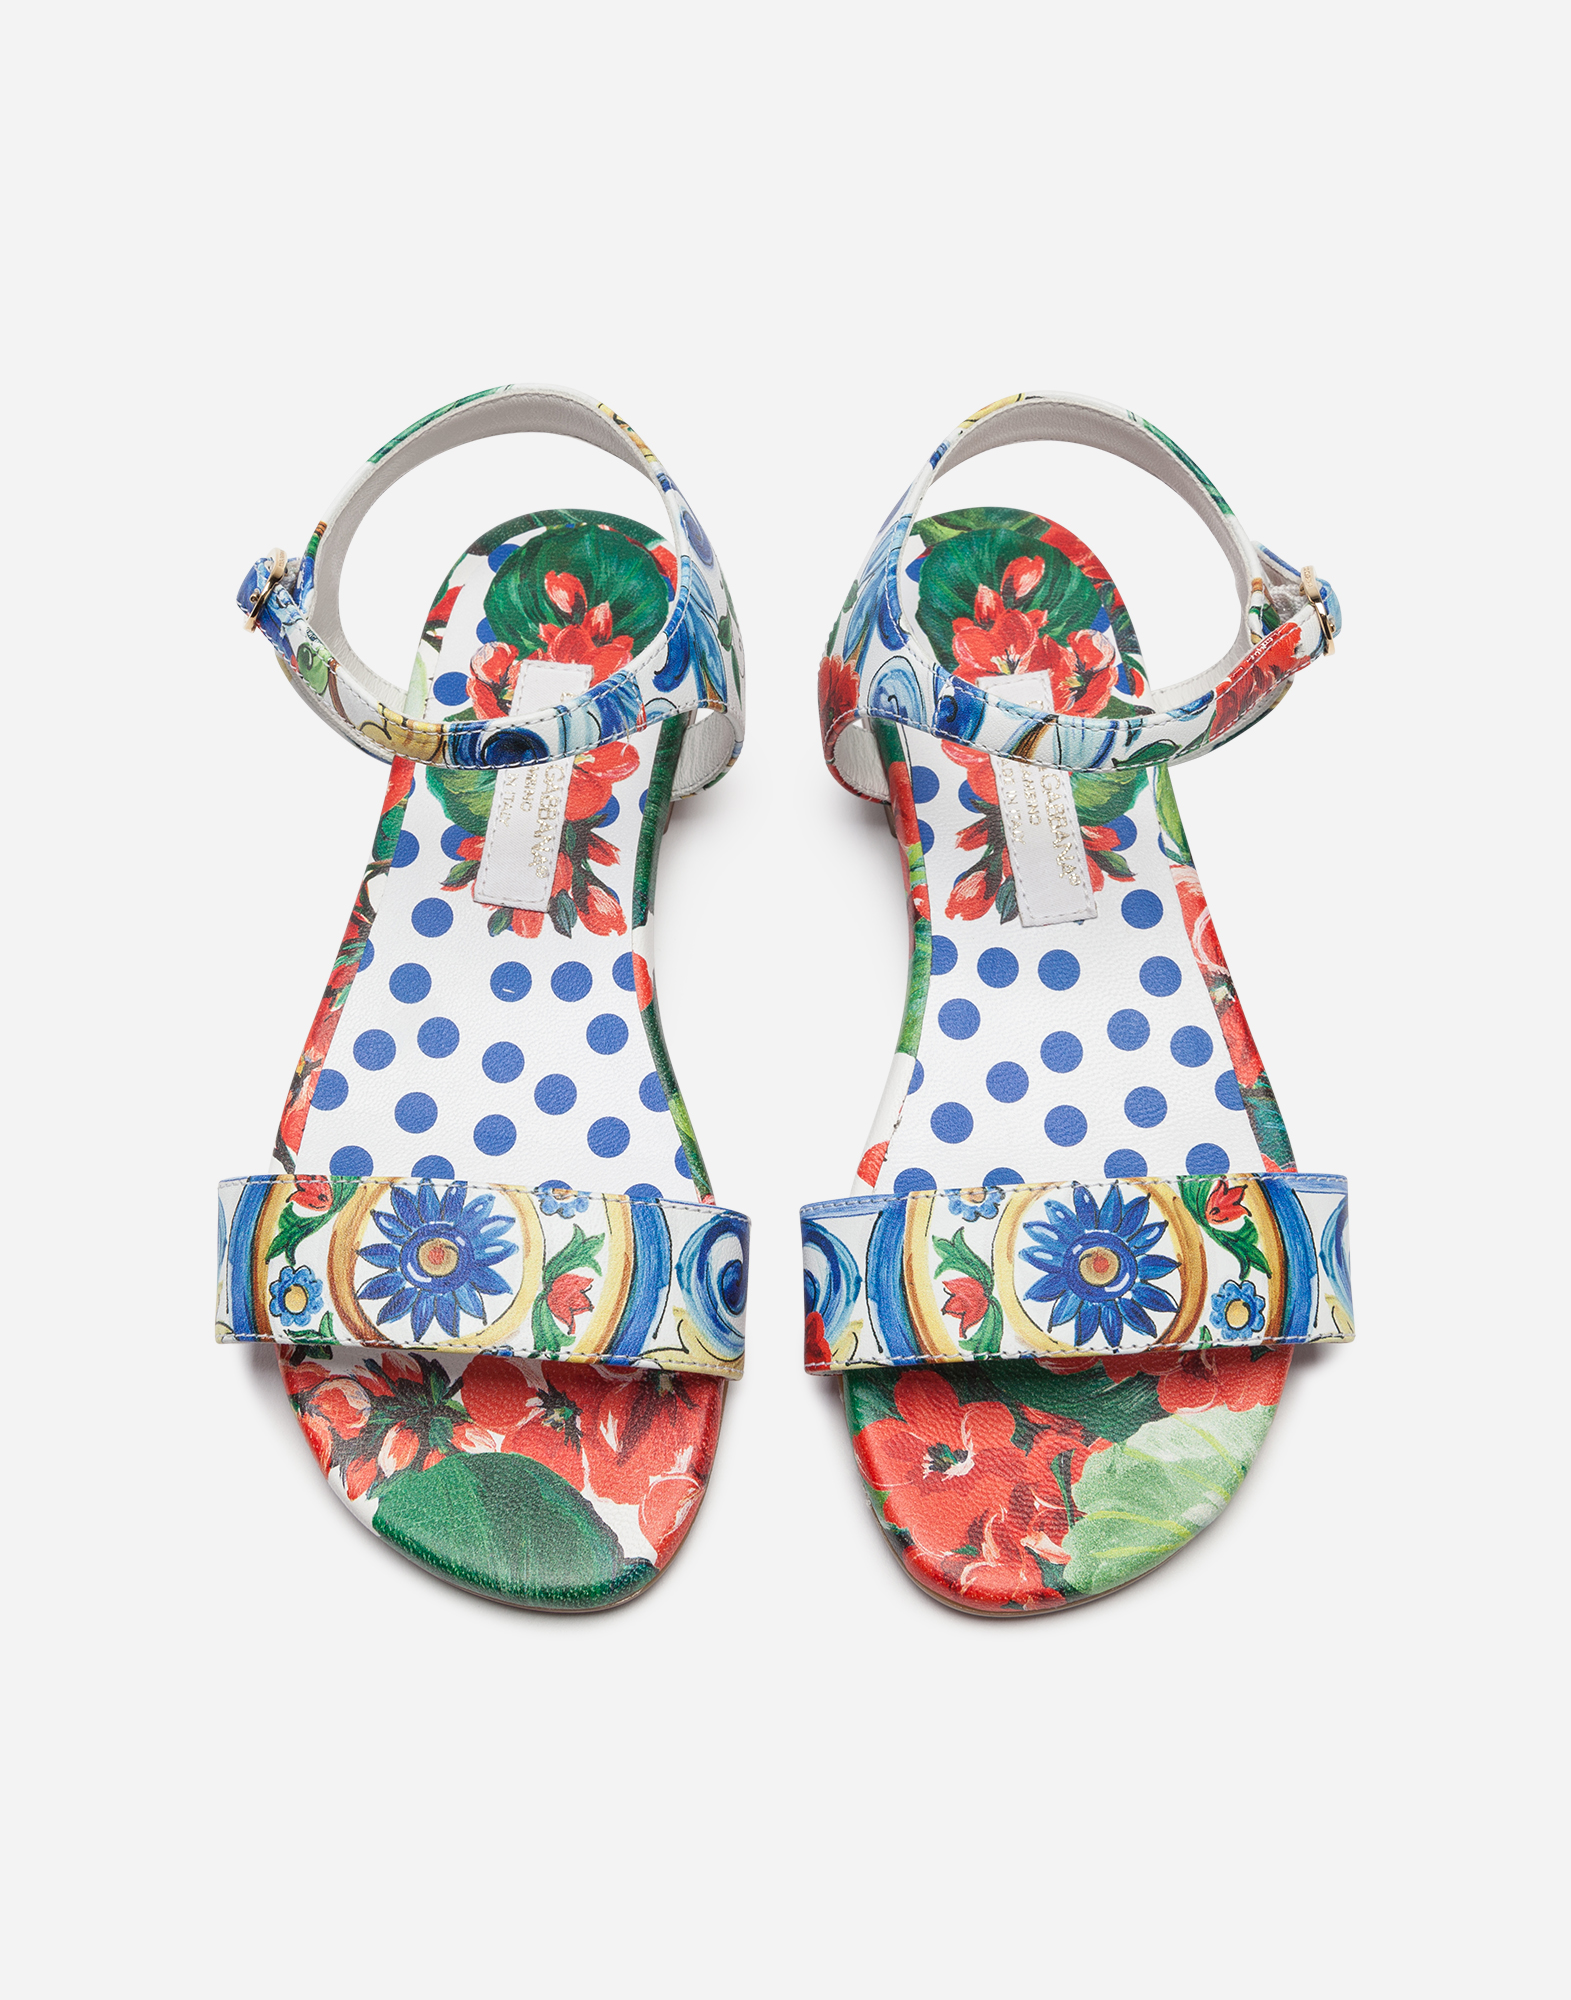 Dolce & Gabbana ANKLE-STRAP SANDALS IN PRINTED NAPPA LEATHER